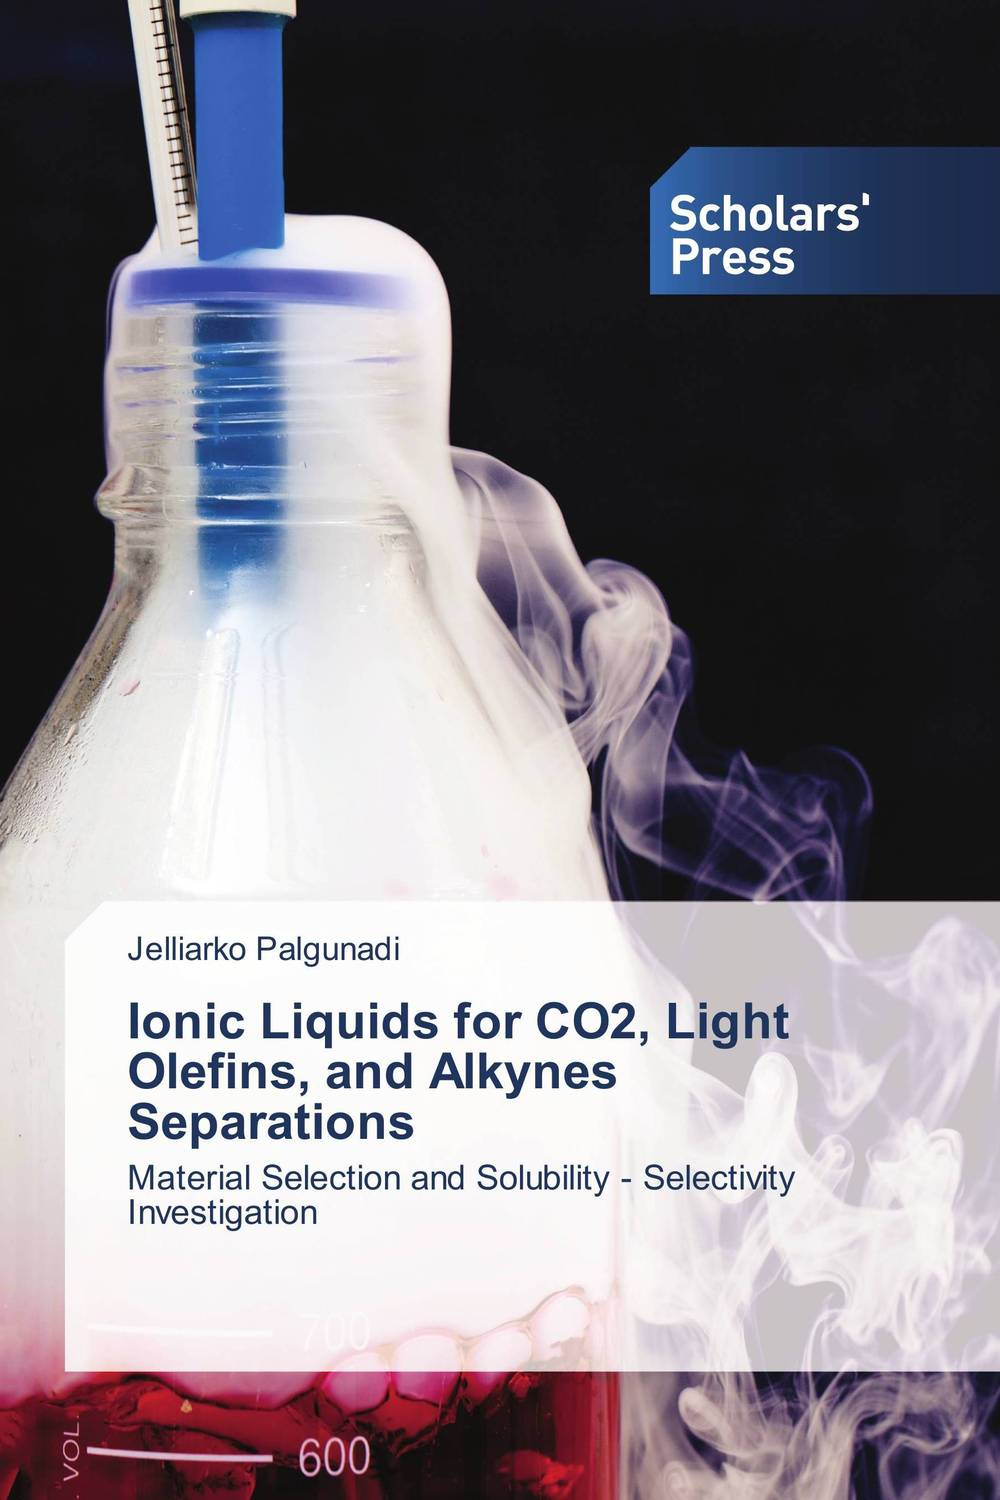 Ionic Liquids for CO2, Light Olefins, and Alkynes Separations фен elchim 3900 healthy ionic red 03073 07